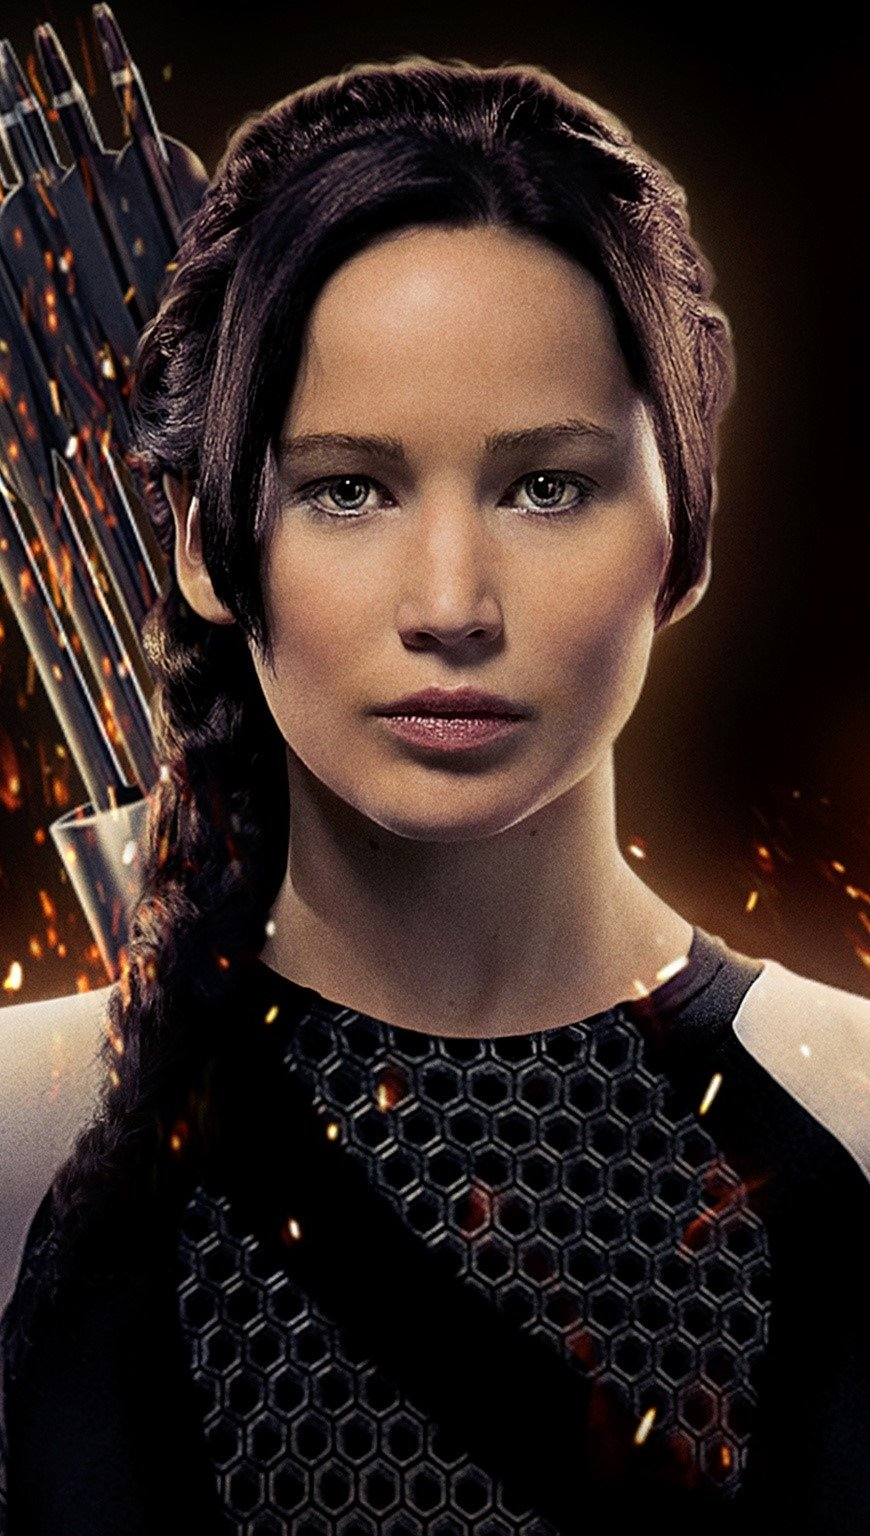 Wallpaper Jennifer Lawrence as Katniss Vertical